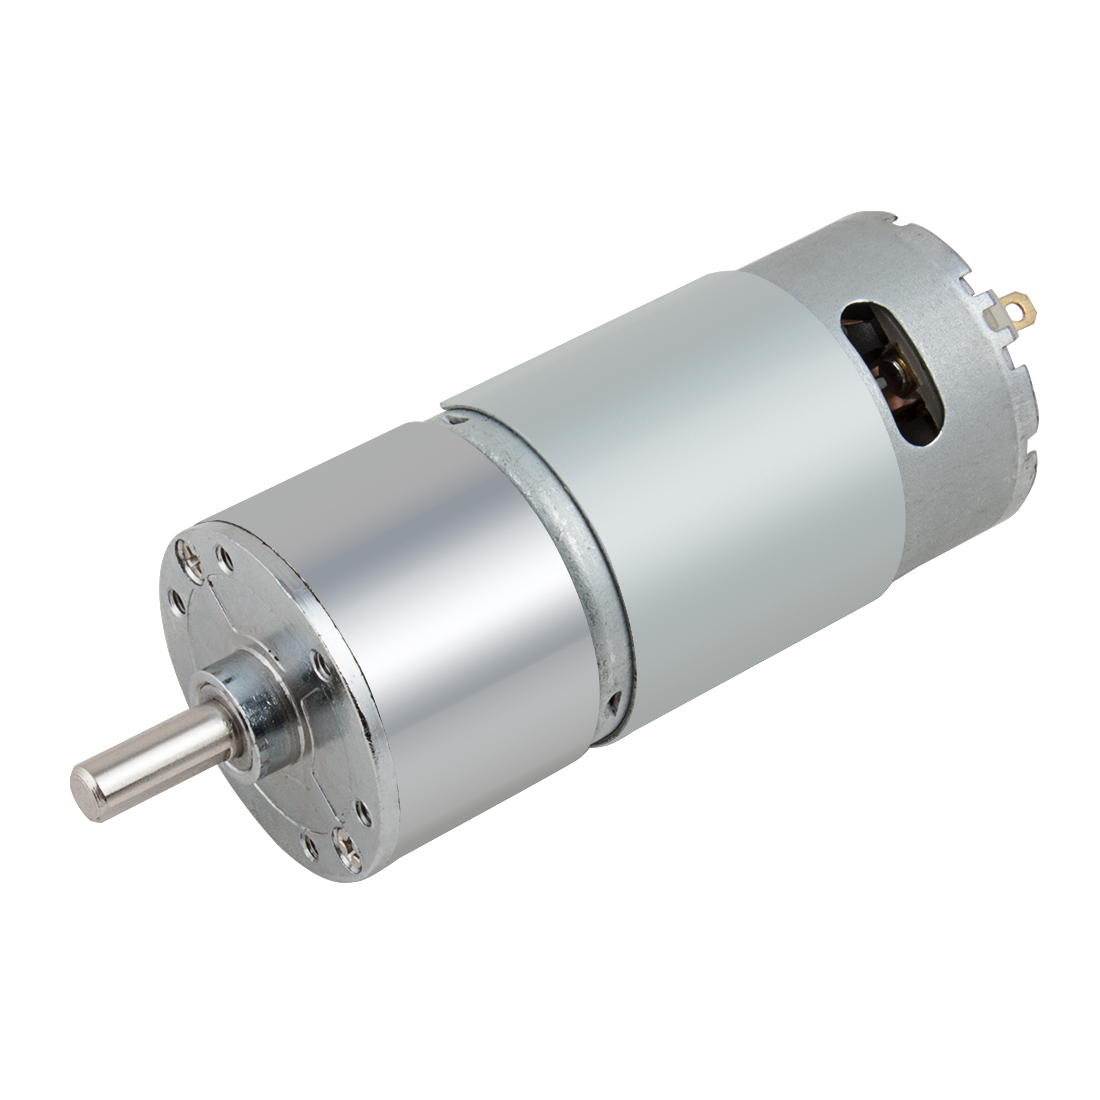 UXCELL 12V 300Rpm Gear Box Motor Speed Reduction Electrical Gearbox Centric Output Shaft